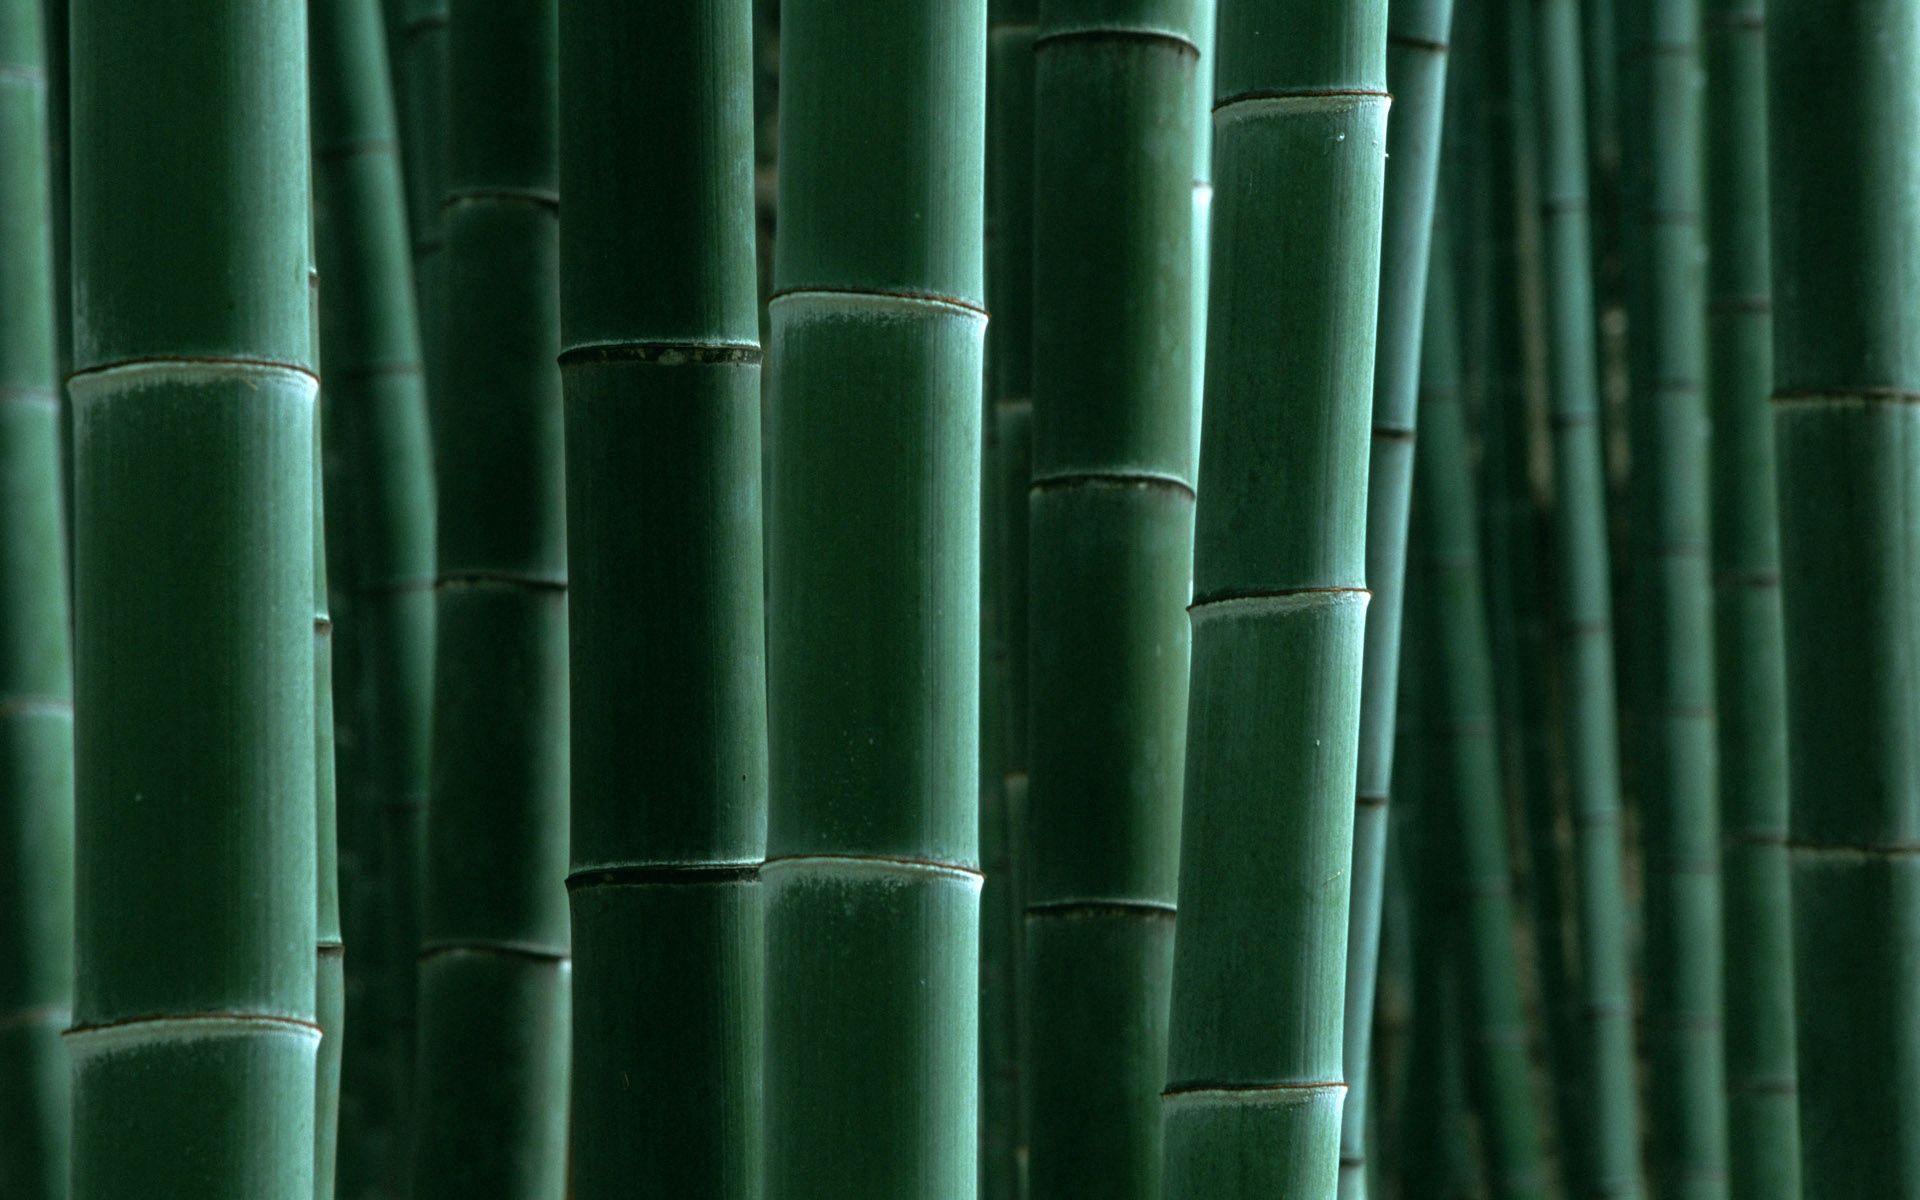 146831 download wallpaper Nature, Bamboo, Stripes, Strips screensavers and pictures for free